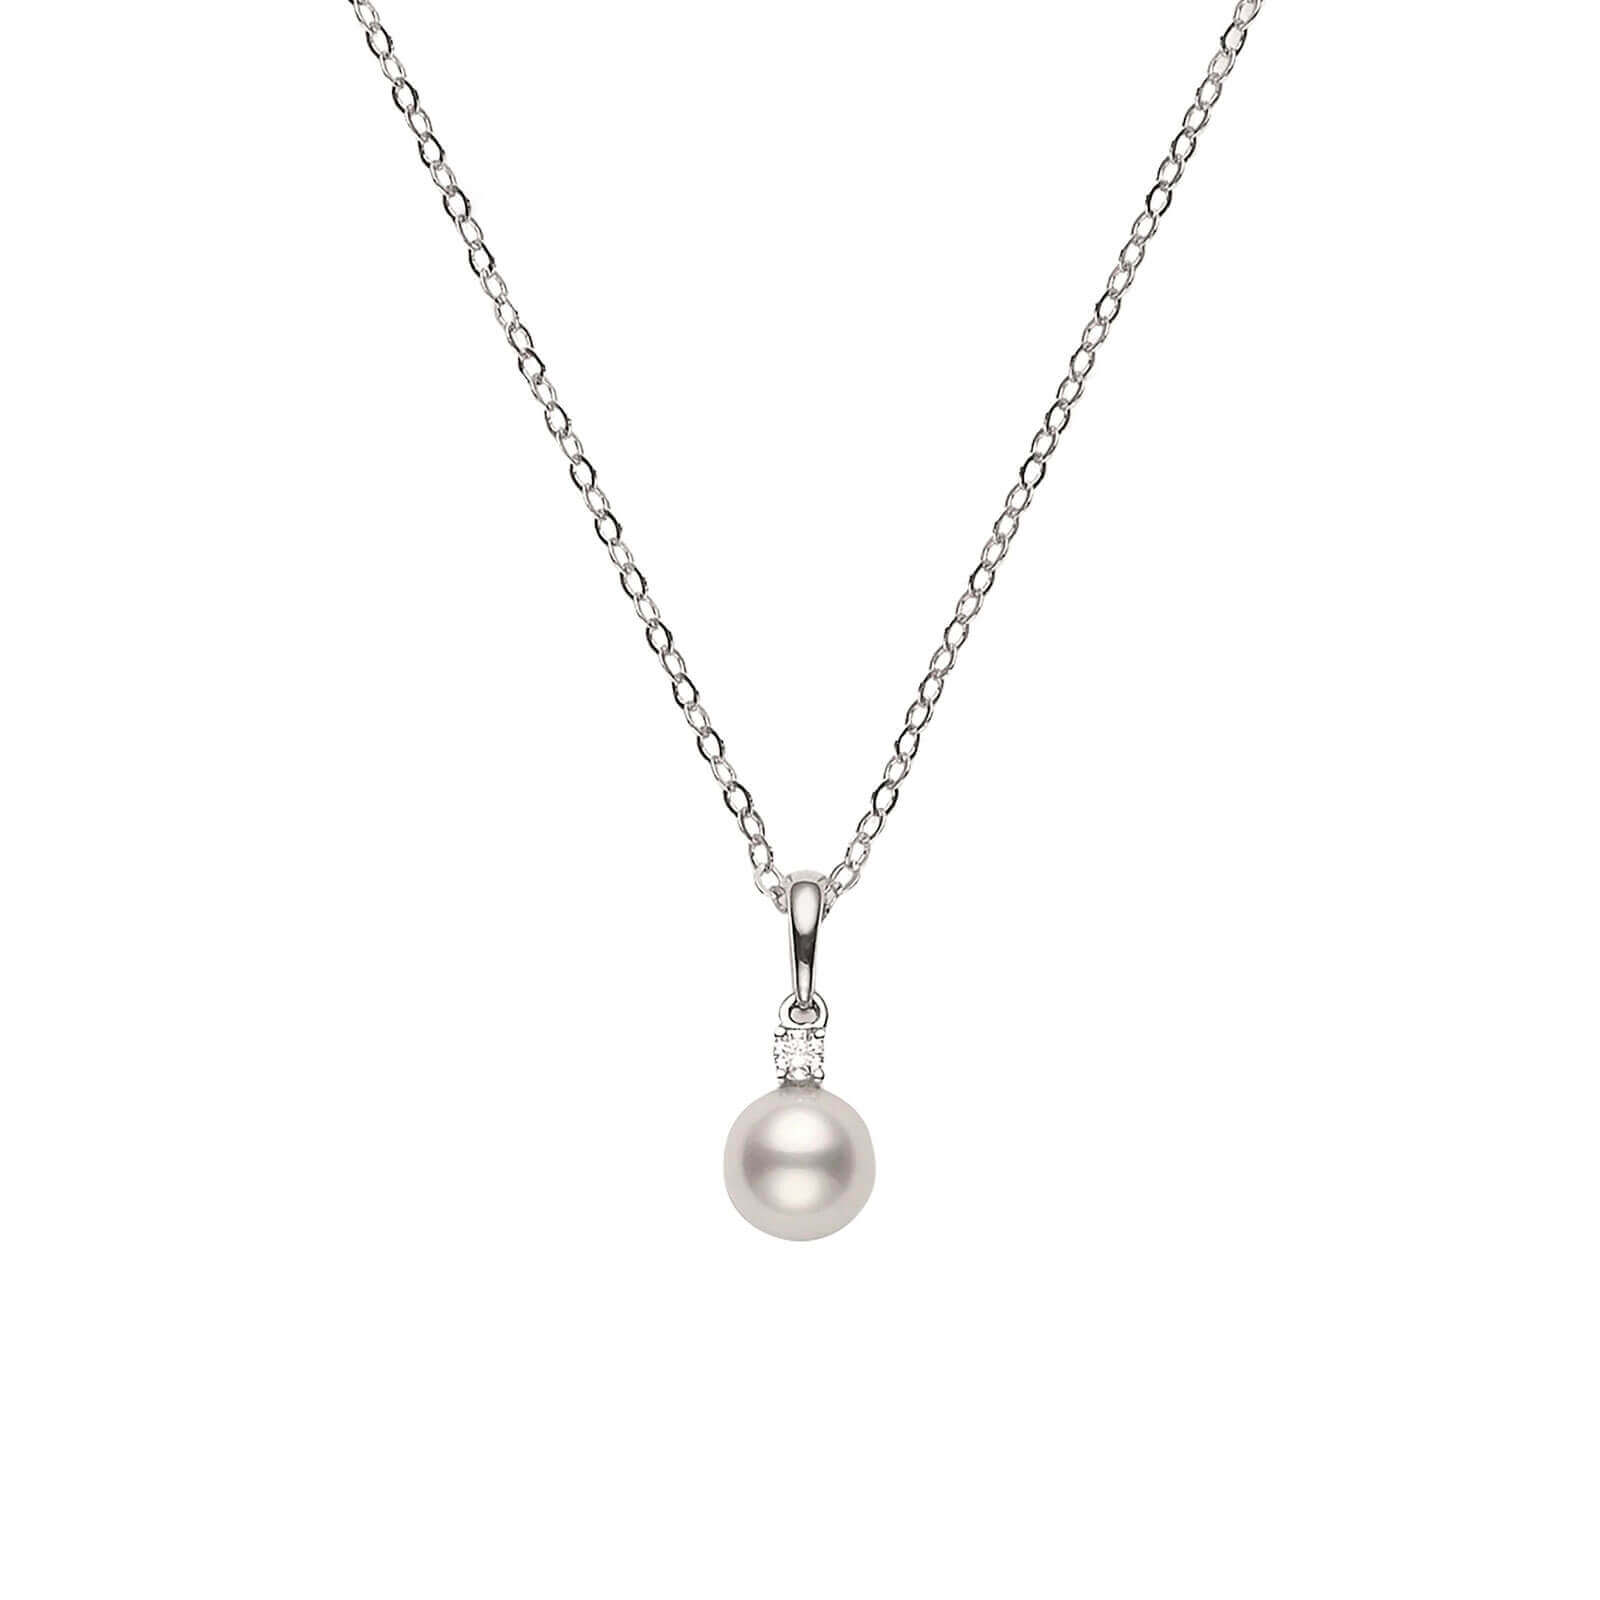 products realreal enlarged necklaces mikimoto necklace pendant pearl jewelry the